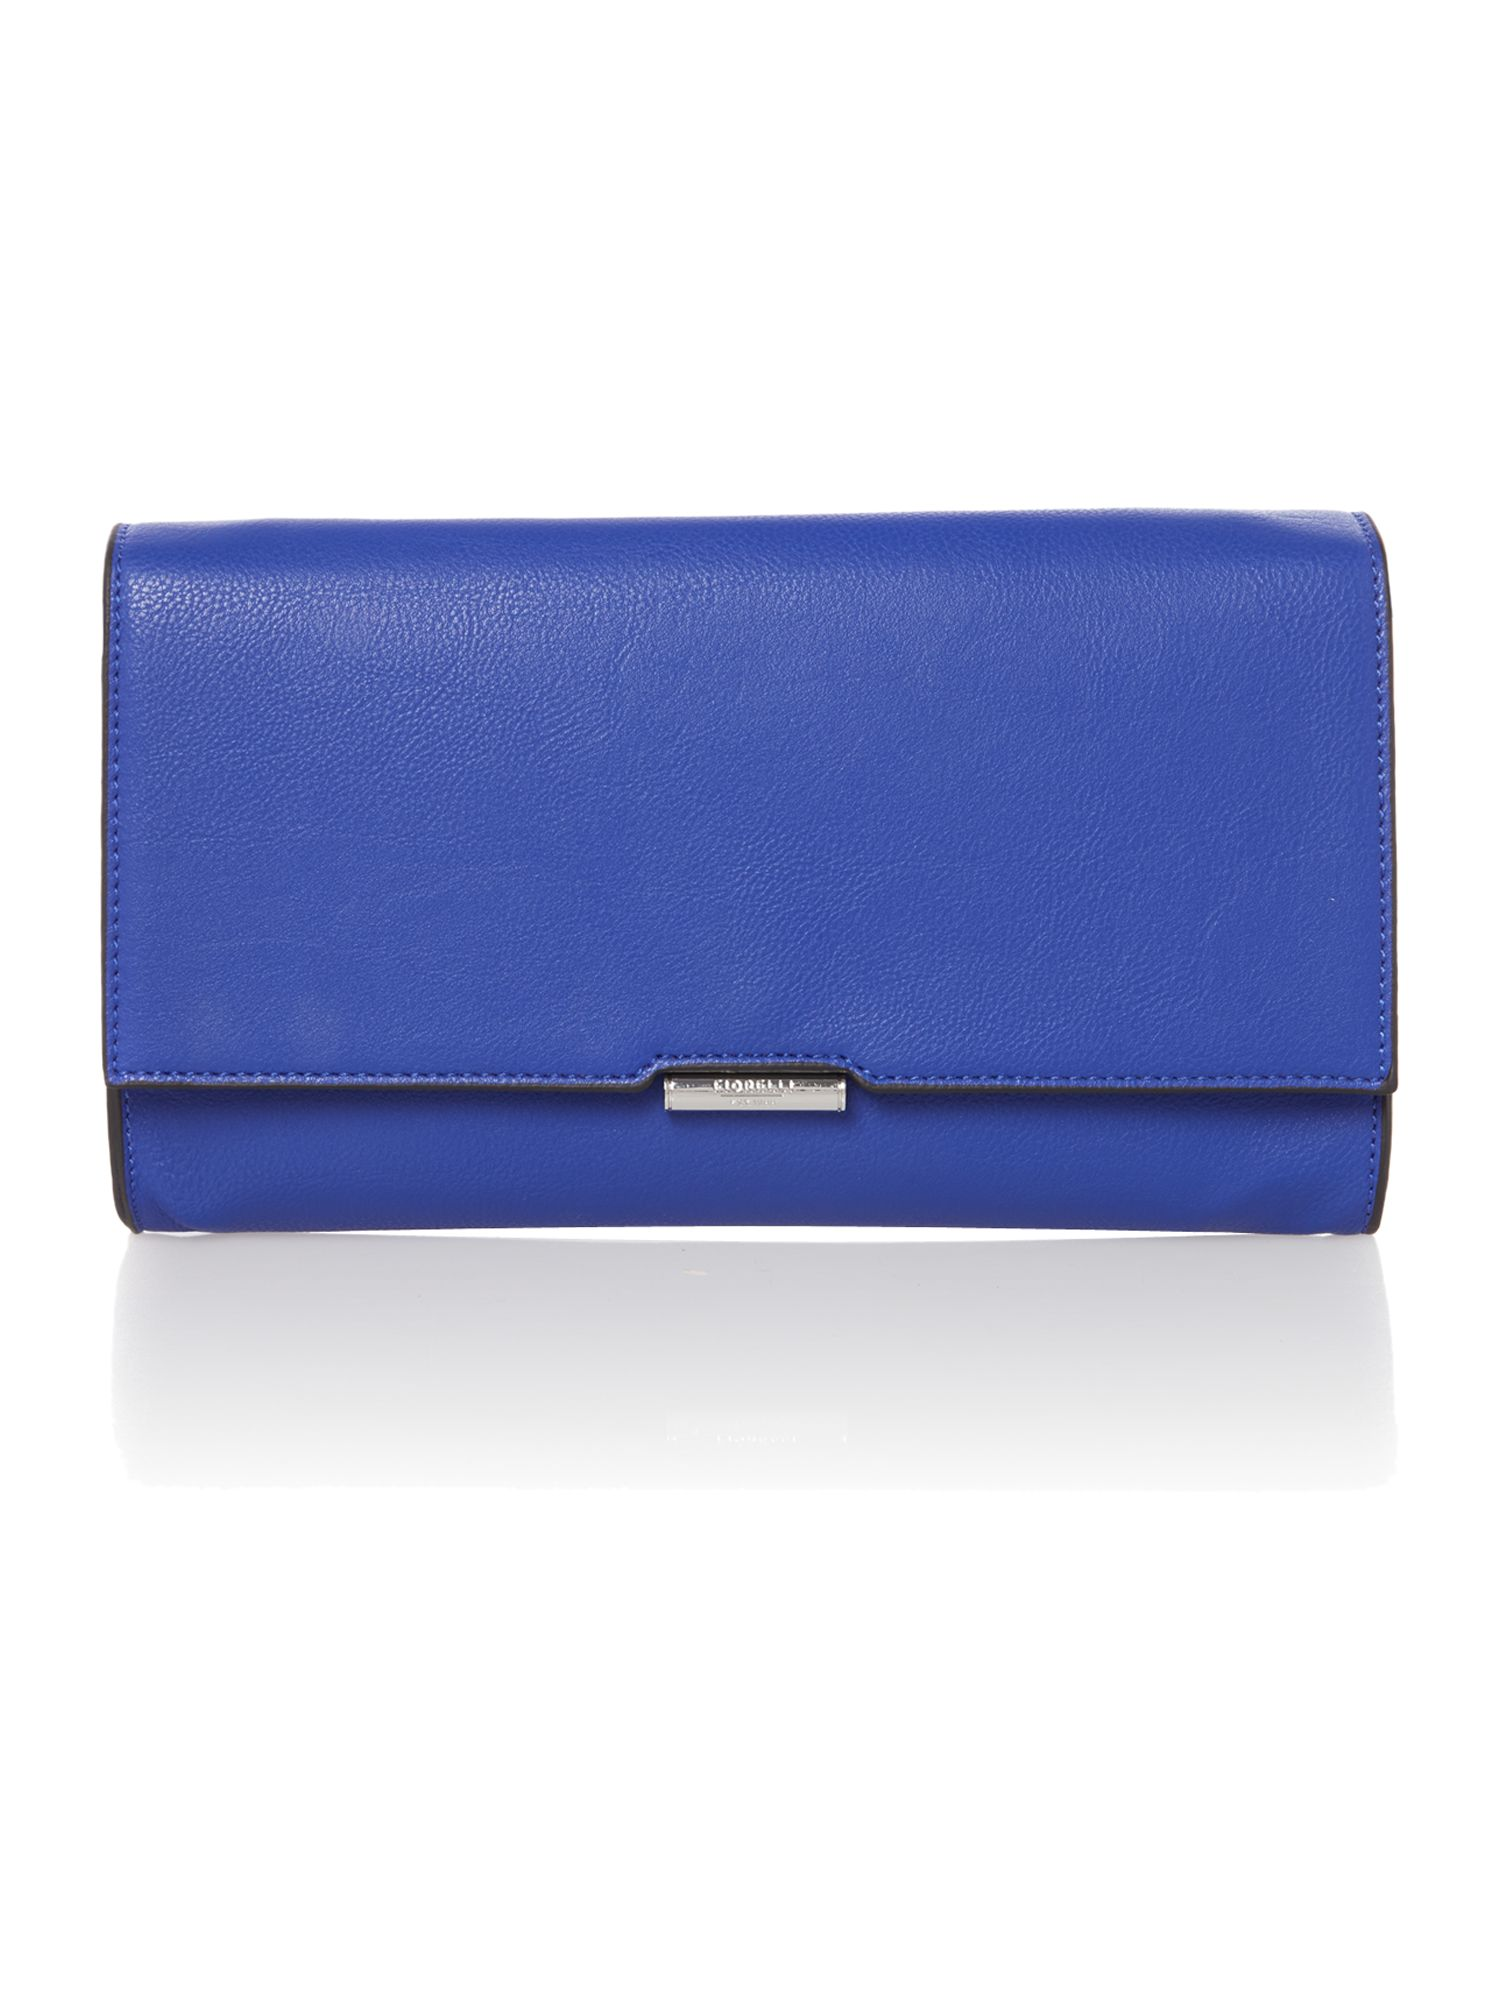 Dixie blue clutch bag